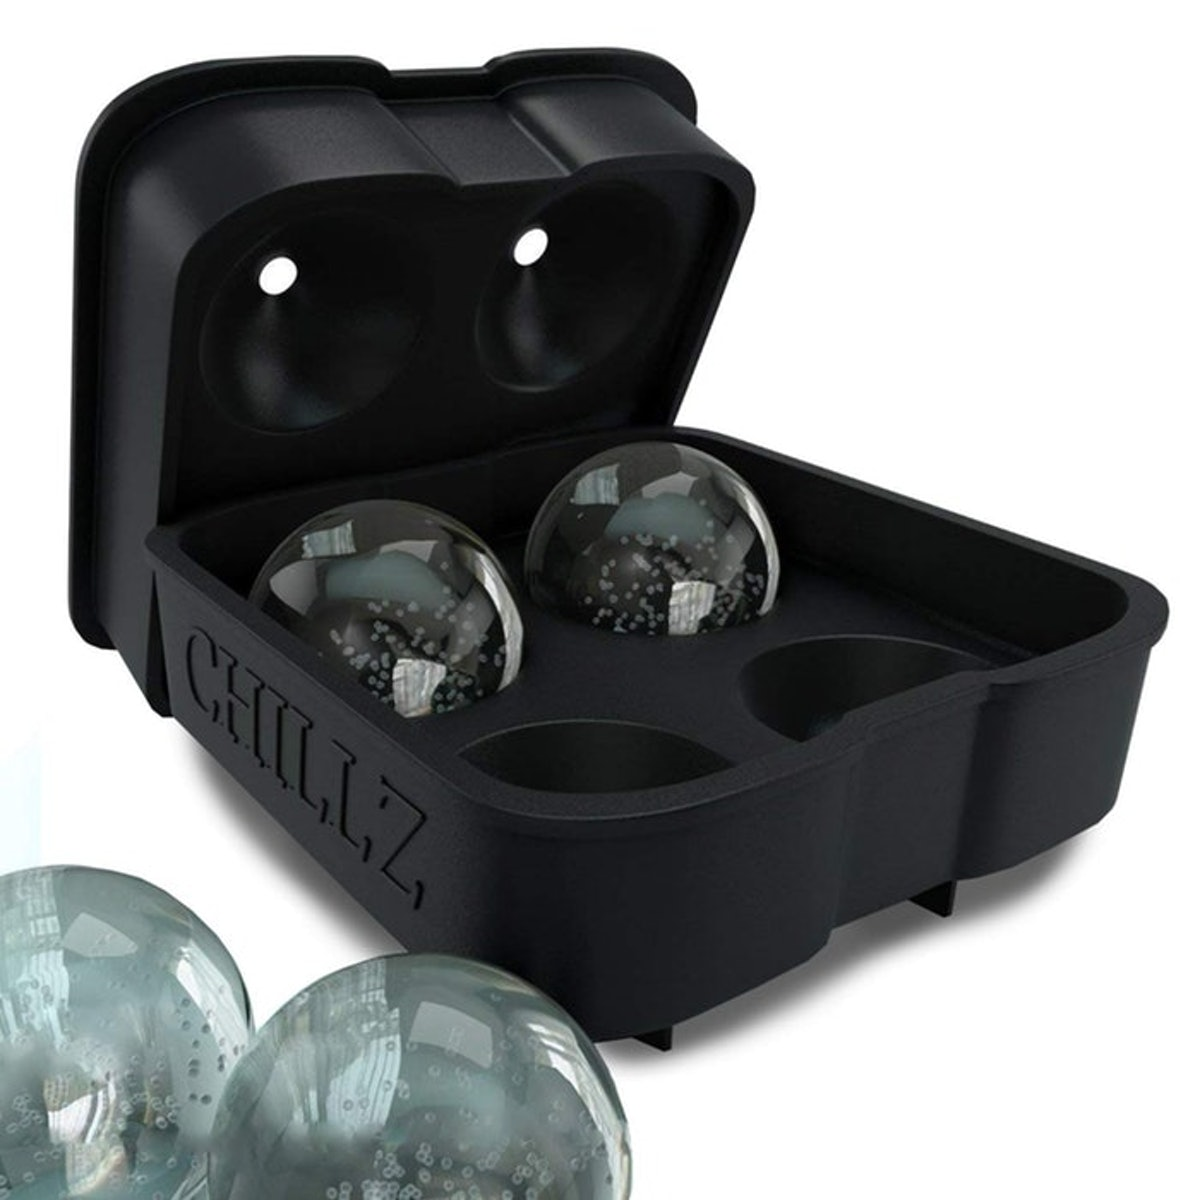 The Classic Kitchen Ice Ball Mold